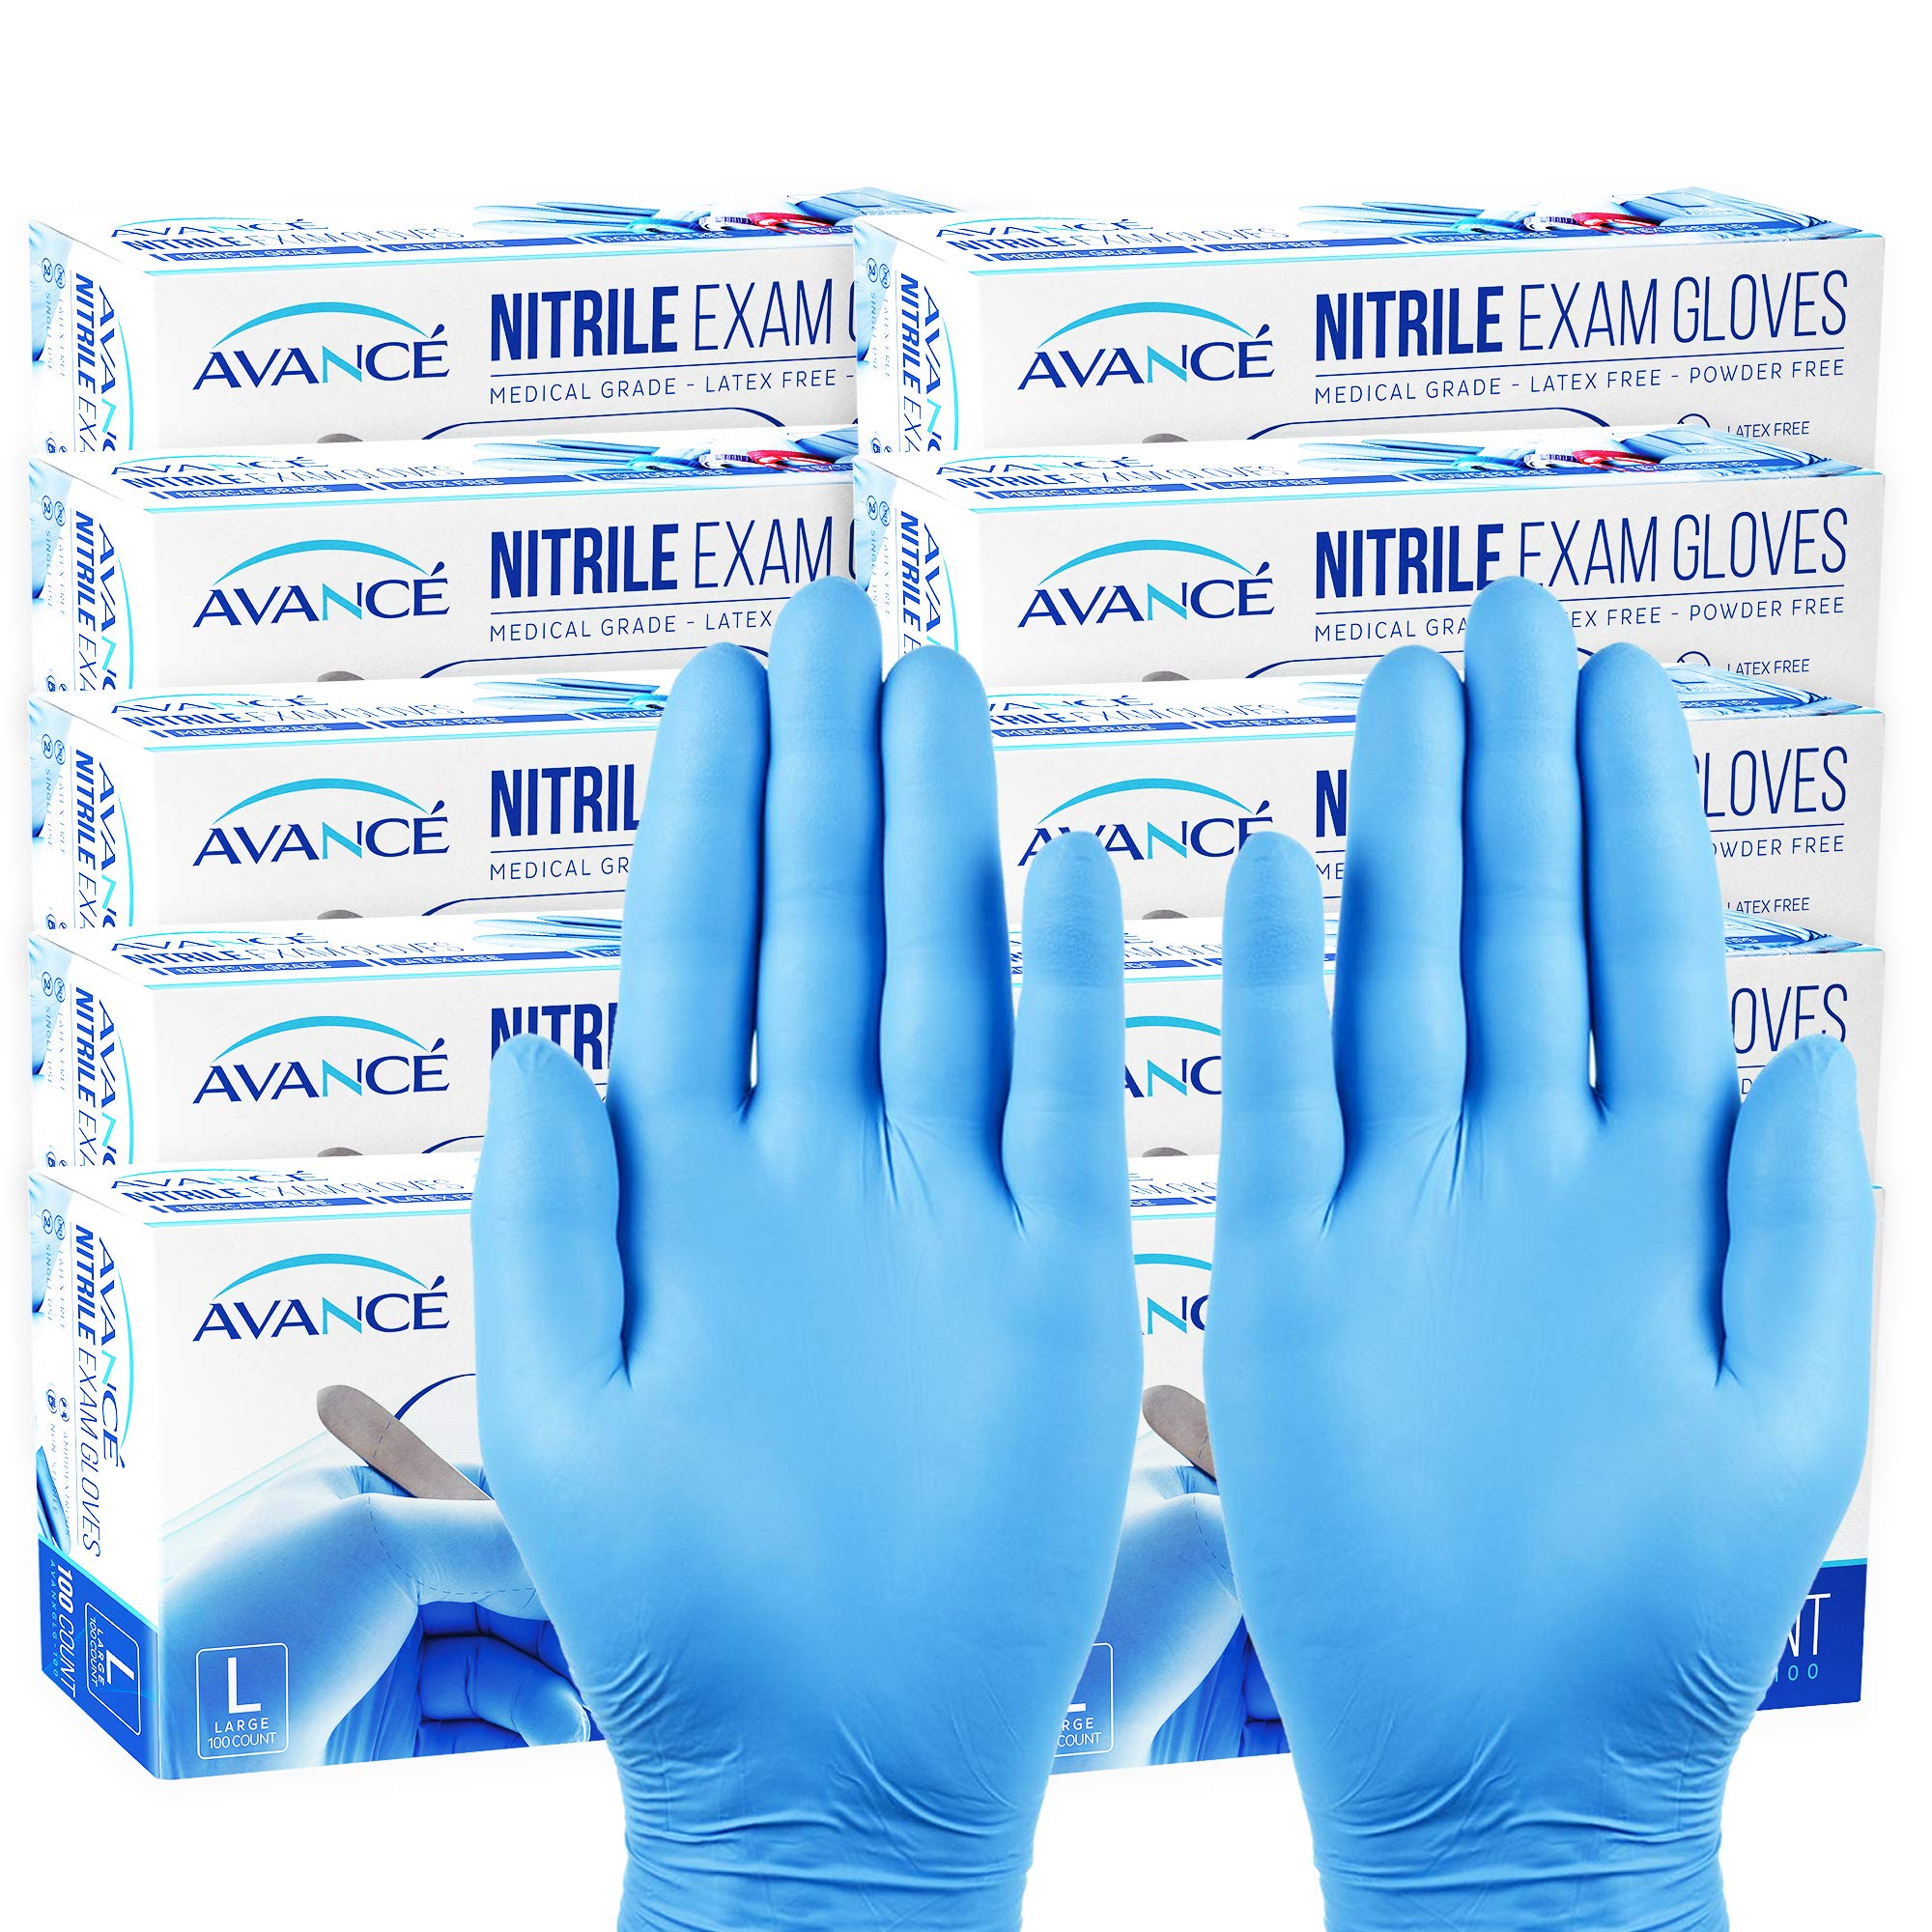 Avancé Nitrile Exam Gloves Medical Grade Powder-Free Textured Fingertips Latex-Free Synthetic Rubber Non-Sterile Disposable Ambidextrous Single Use, 3 Mil Thickness, Blue, Large, 10-Pack (1000) by AVANCÉ